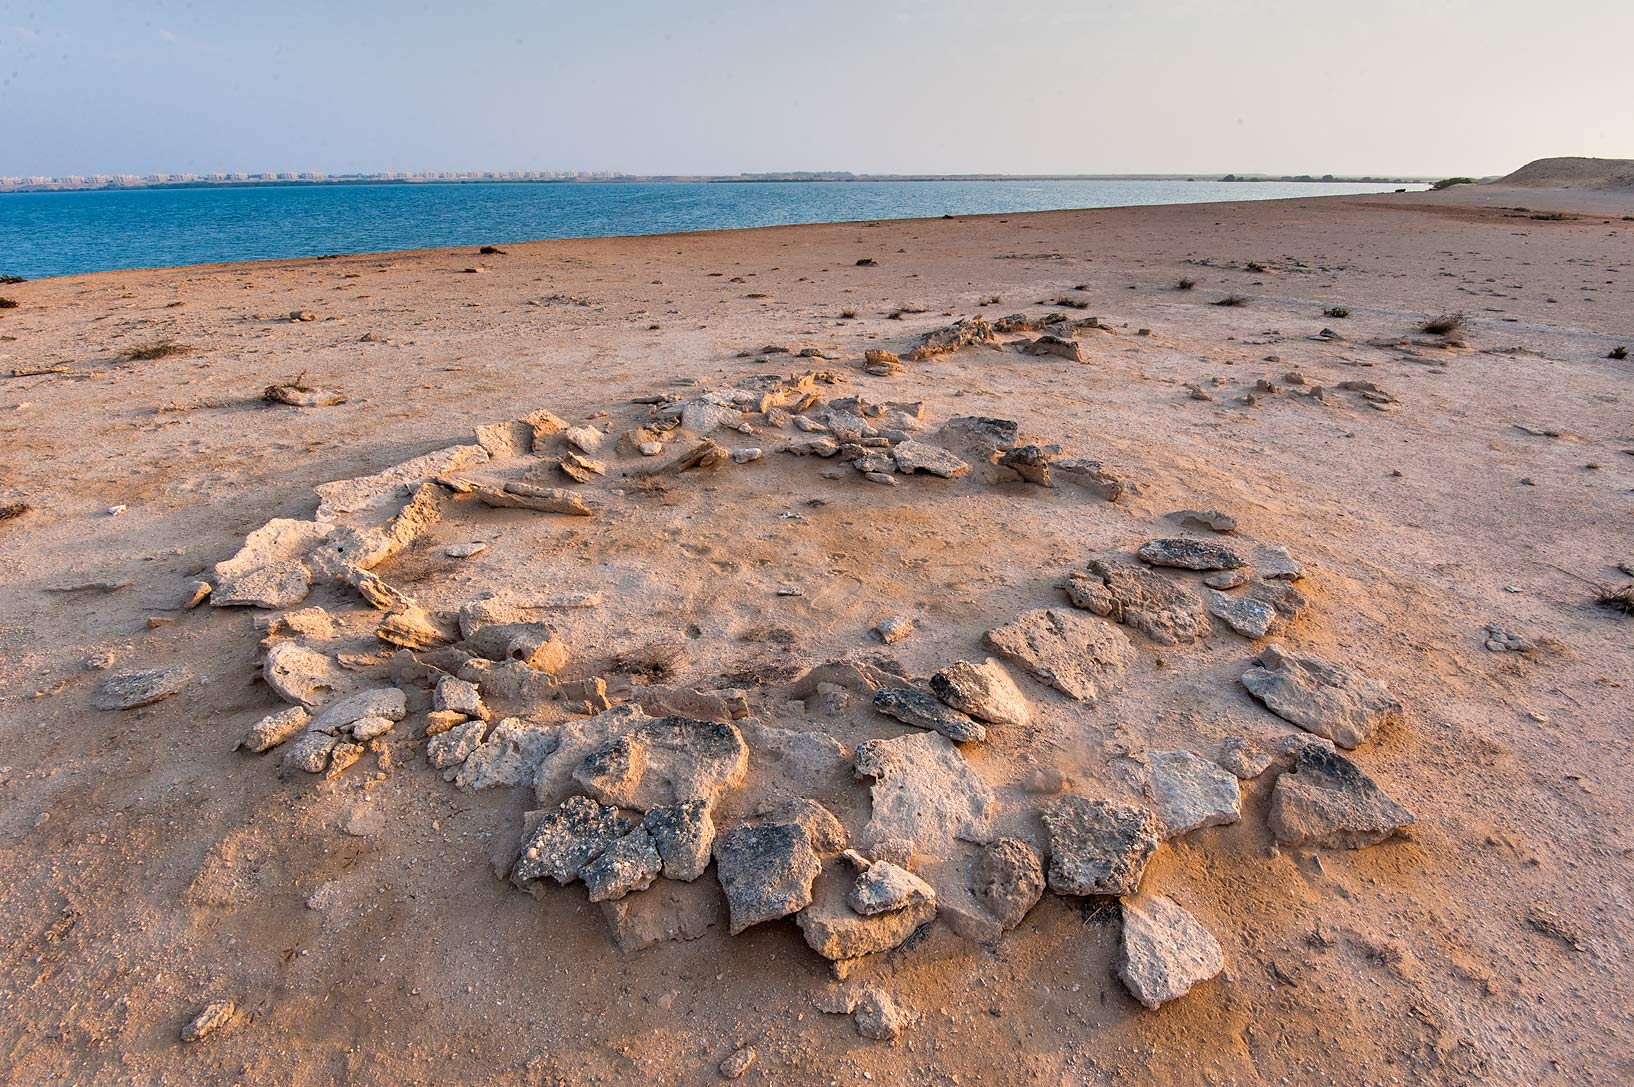 Remains of ancient settlement on Purple Island (Jazirat Bin Ghanim). Al Khor, Qatar